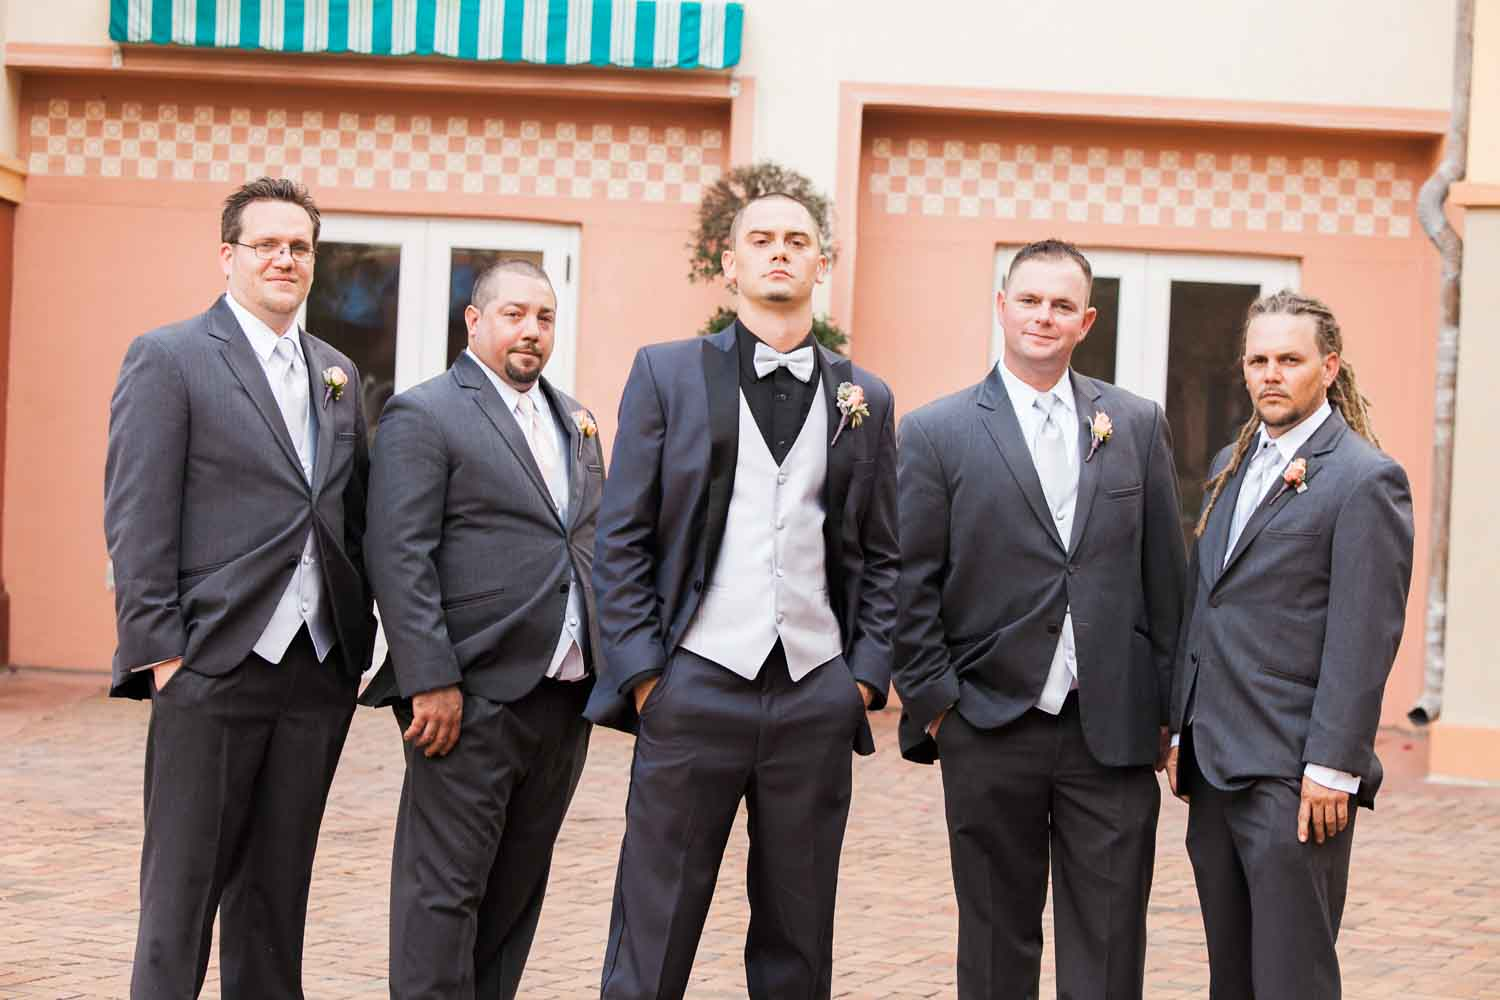 groom and groomsmen in black tux for wedding